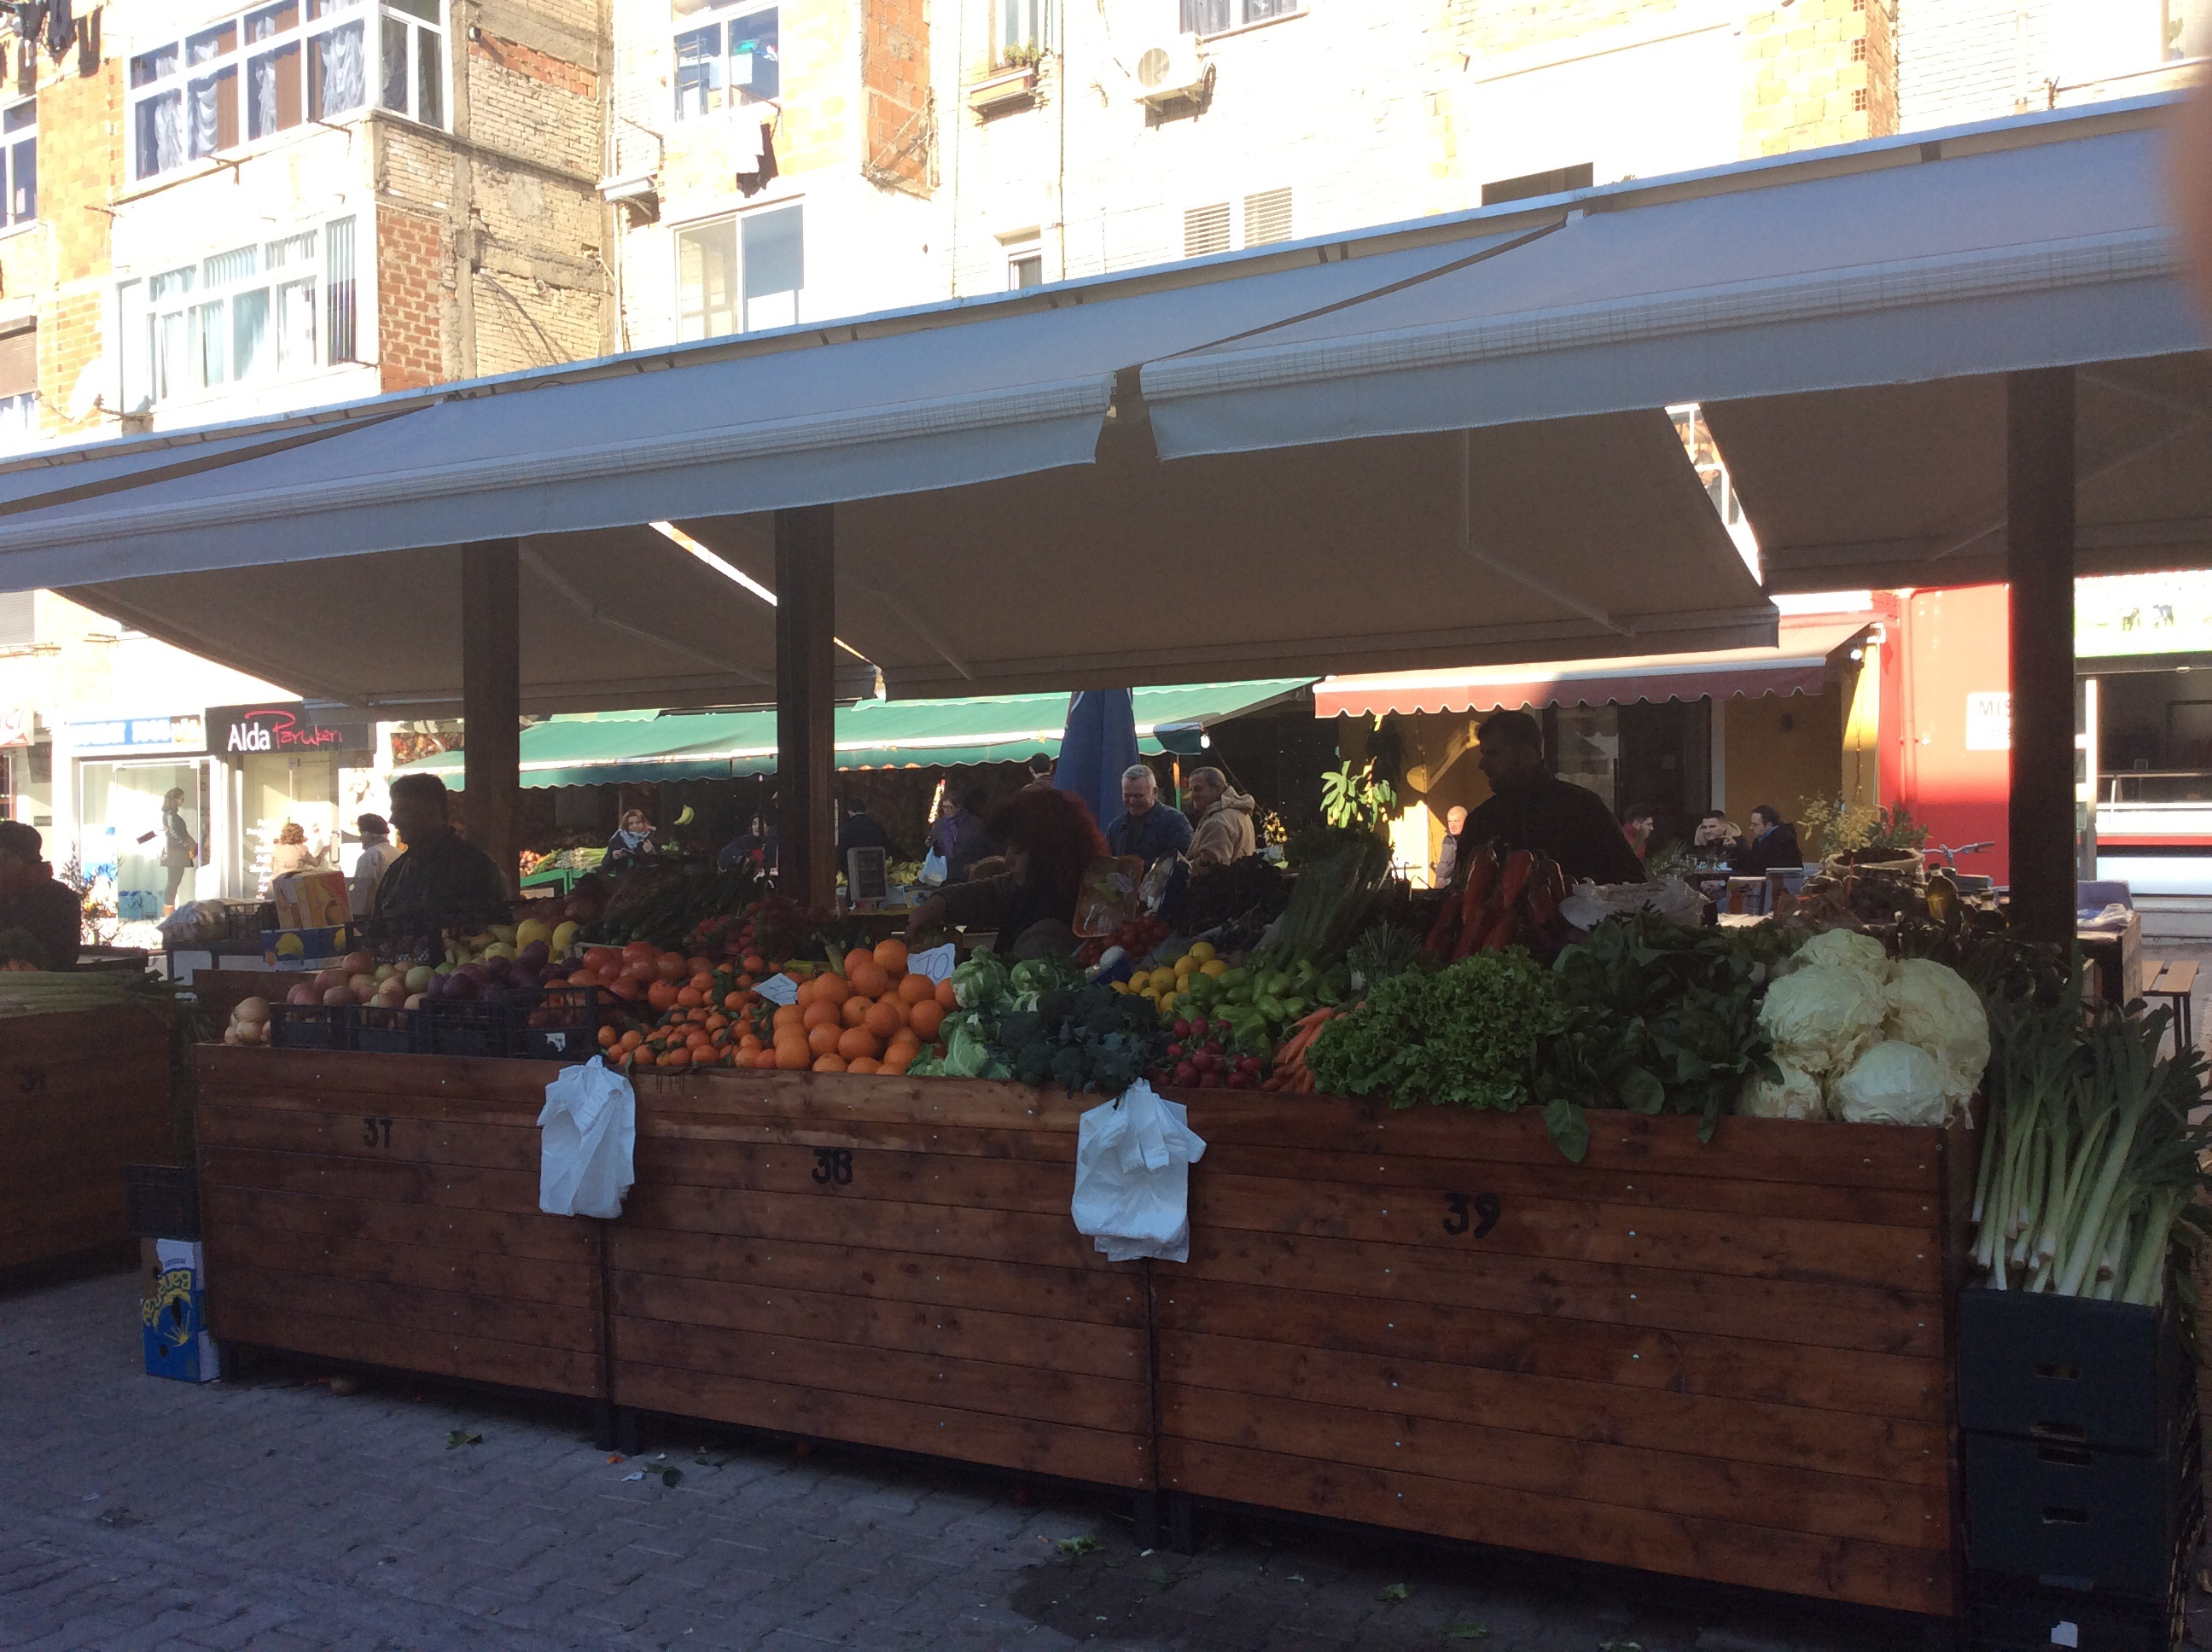 My Neighborhood Market – A Case Study in Urban Requalification